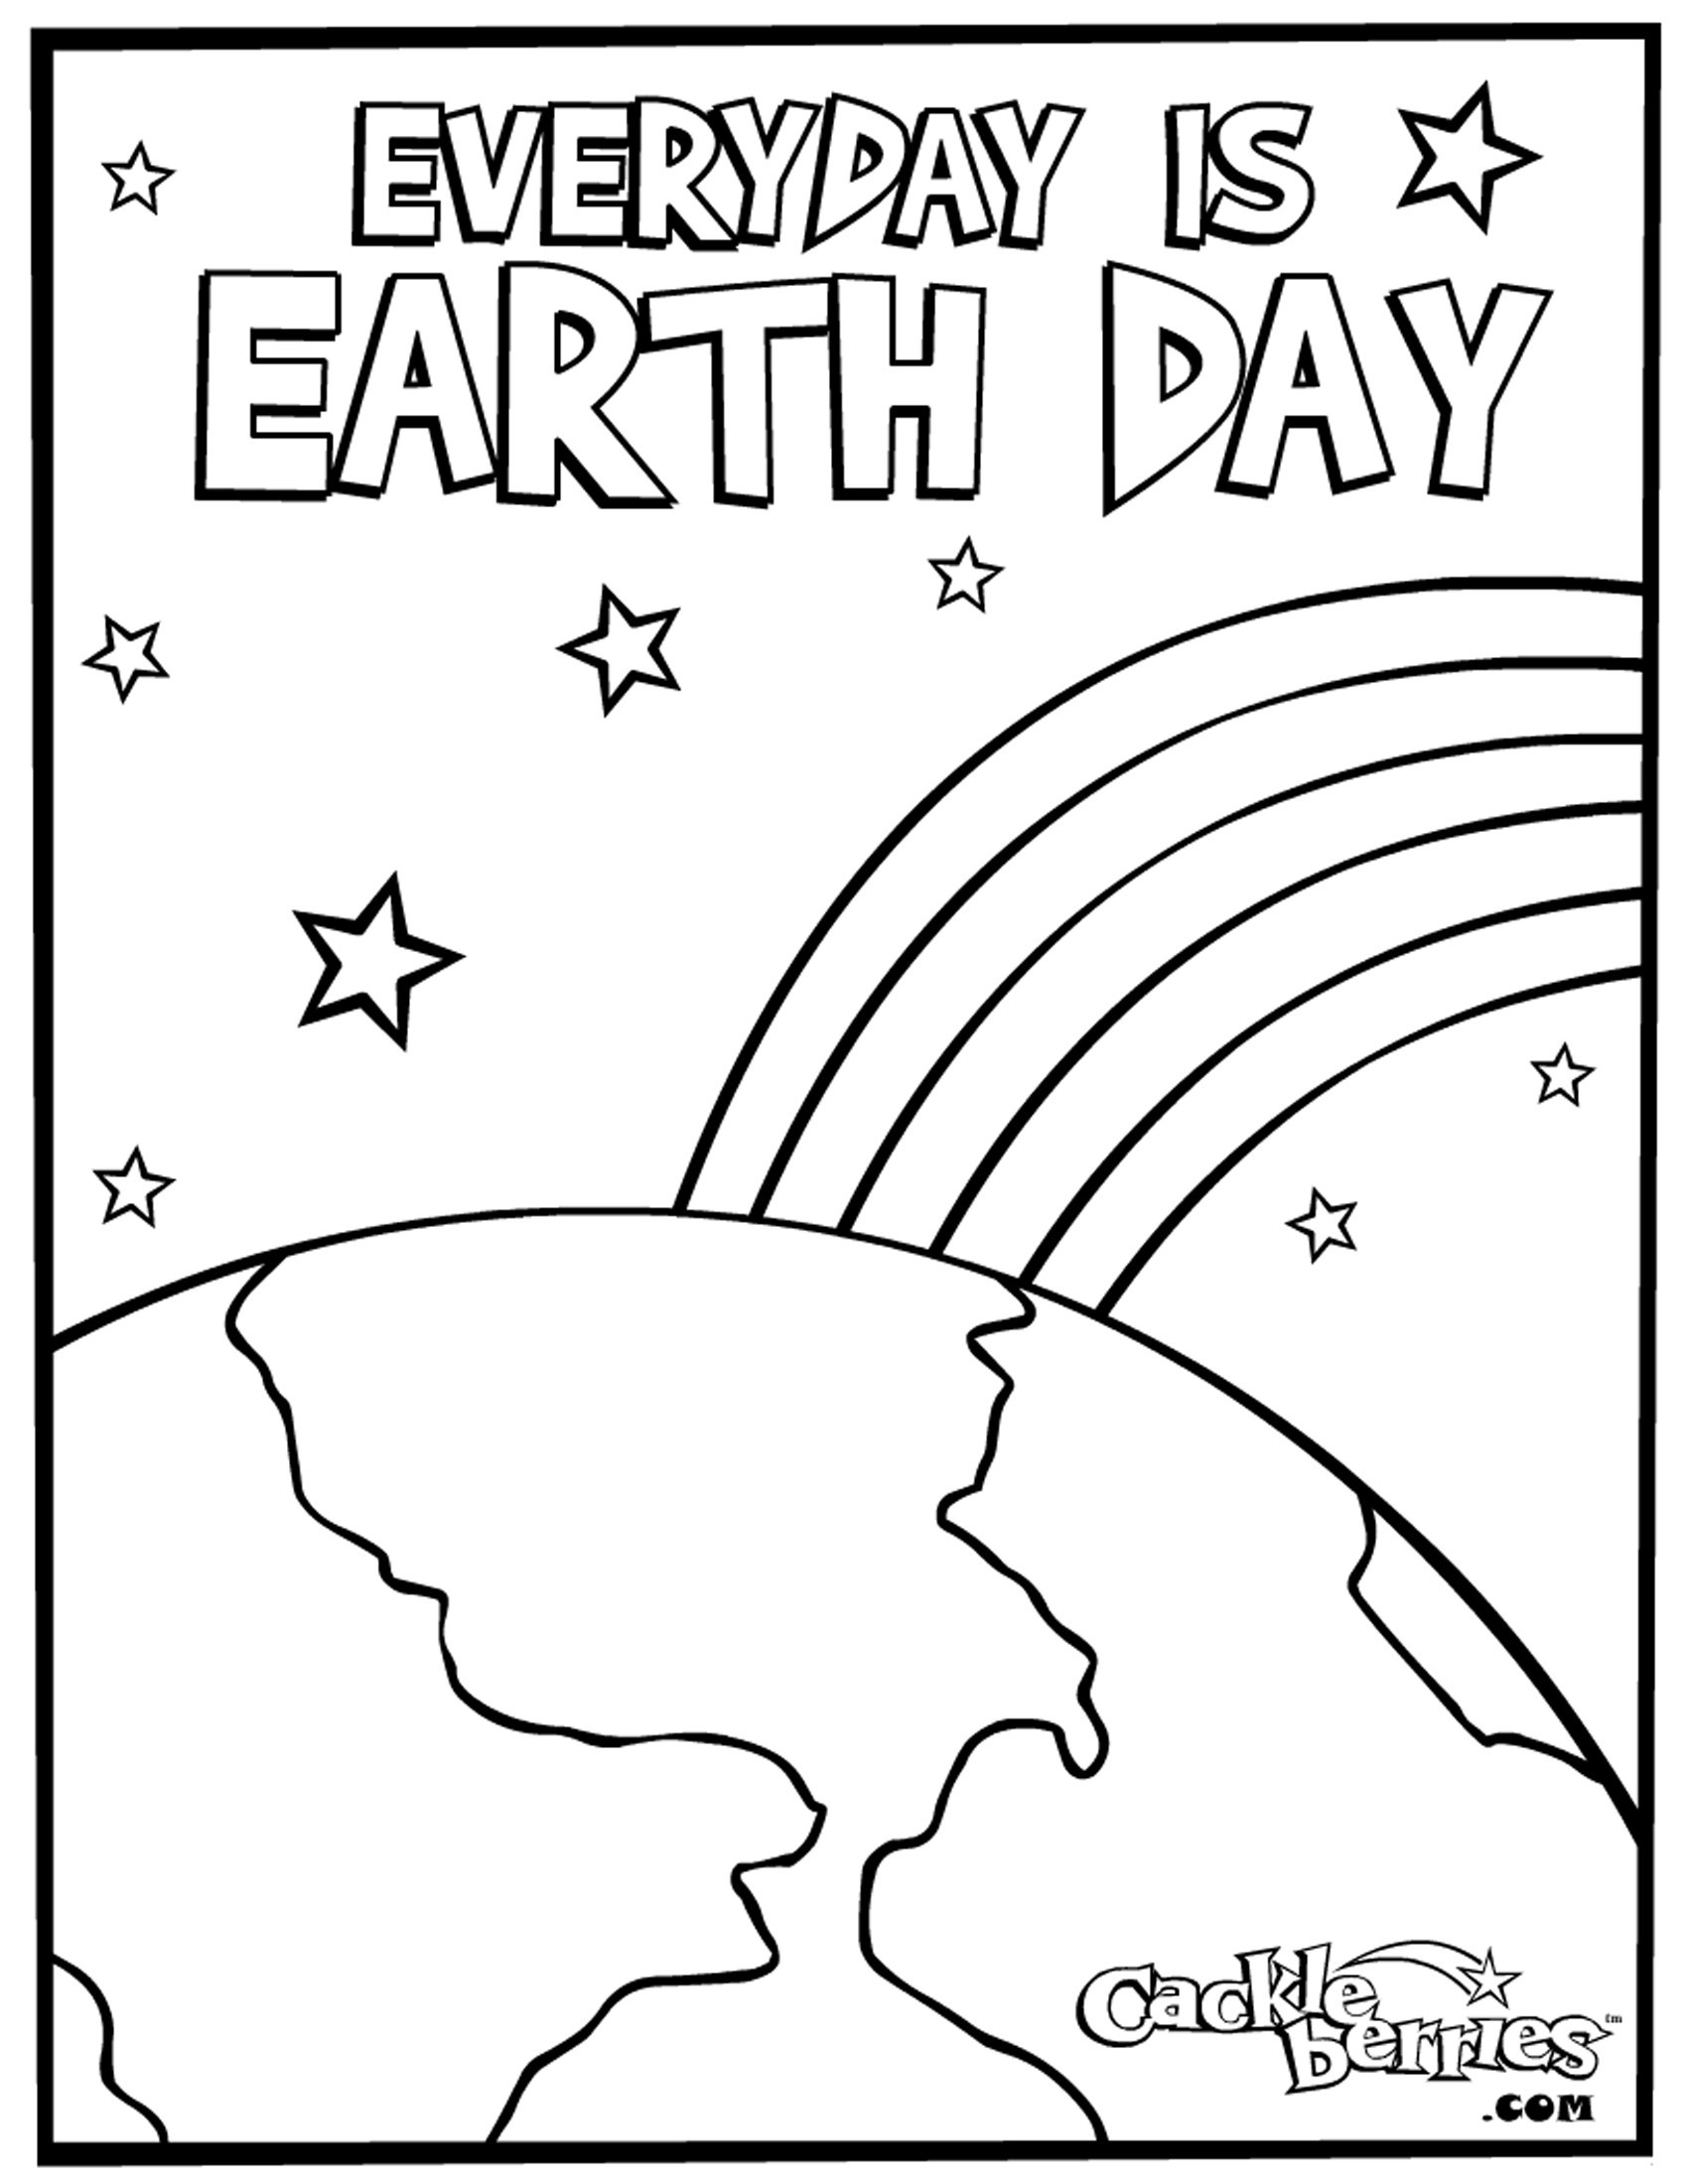 Free Printable Earth Day Coloring Pages And Activities Coloring Coloring Free Printable Earth Day Pages And Activities